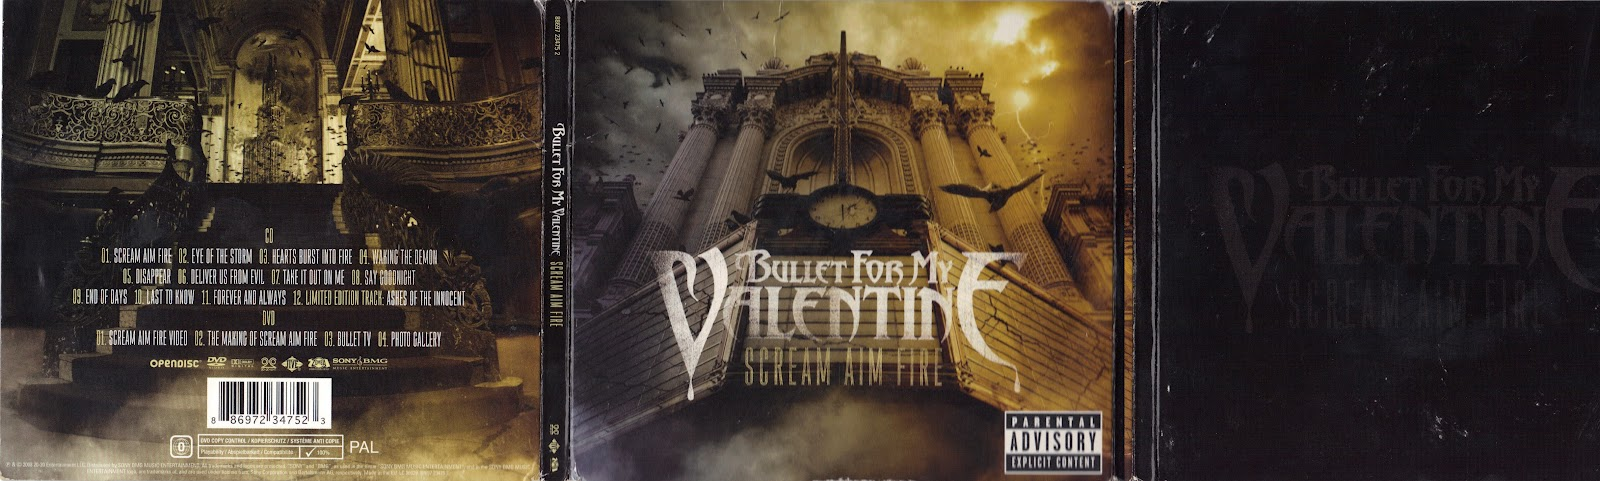 Bullet For My Valentine Are A Metal Core Band From Bridgend In Wales. The  Band Currently Have Four Releases And Are Working On A Fifth In Thailand  Now.